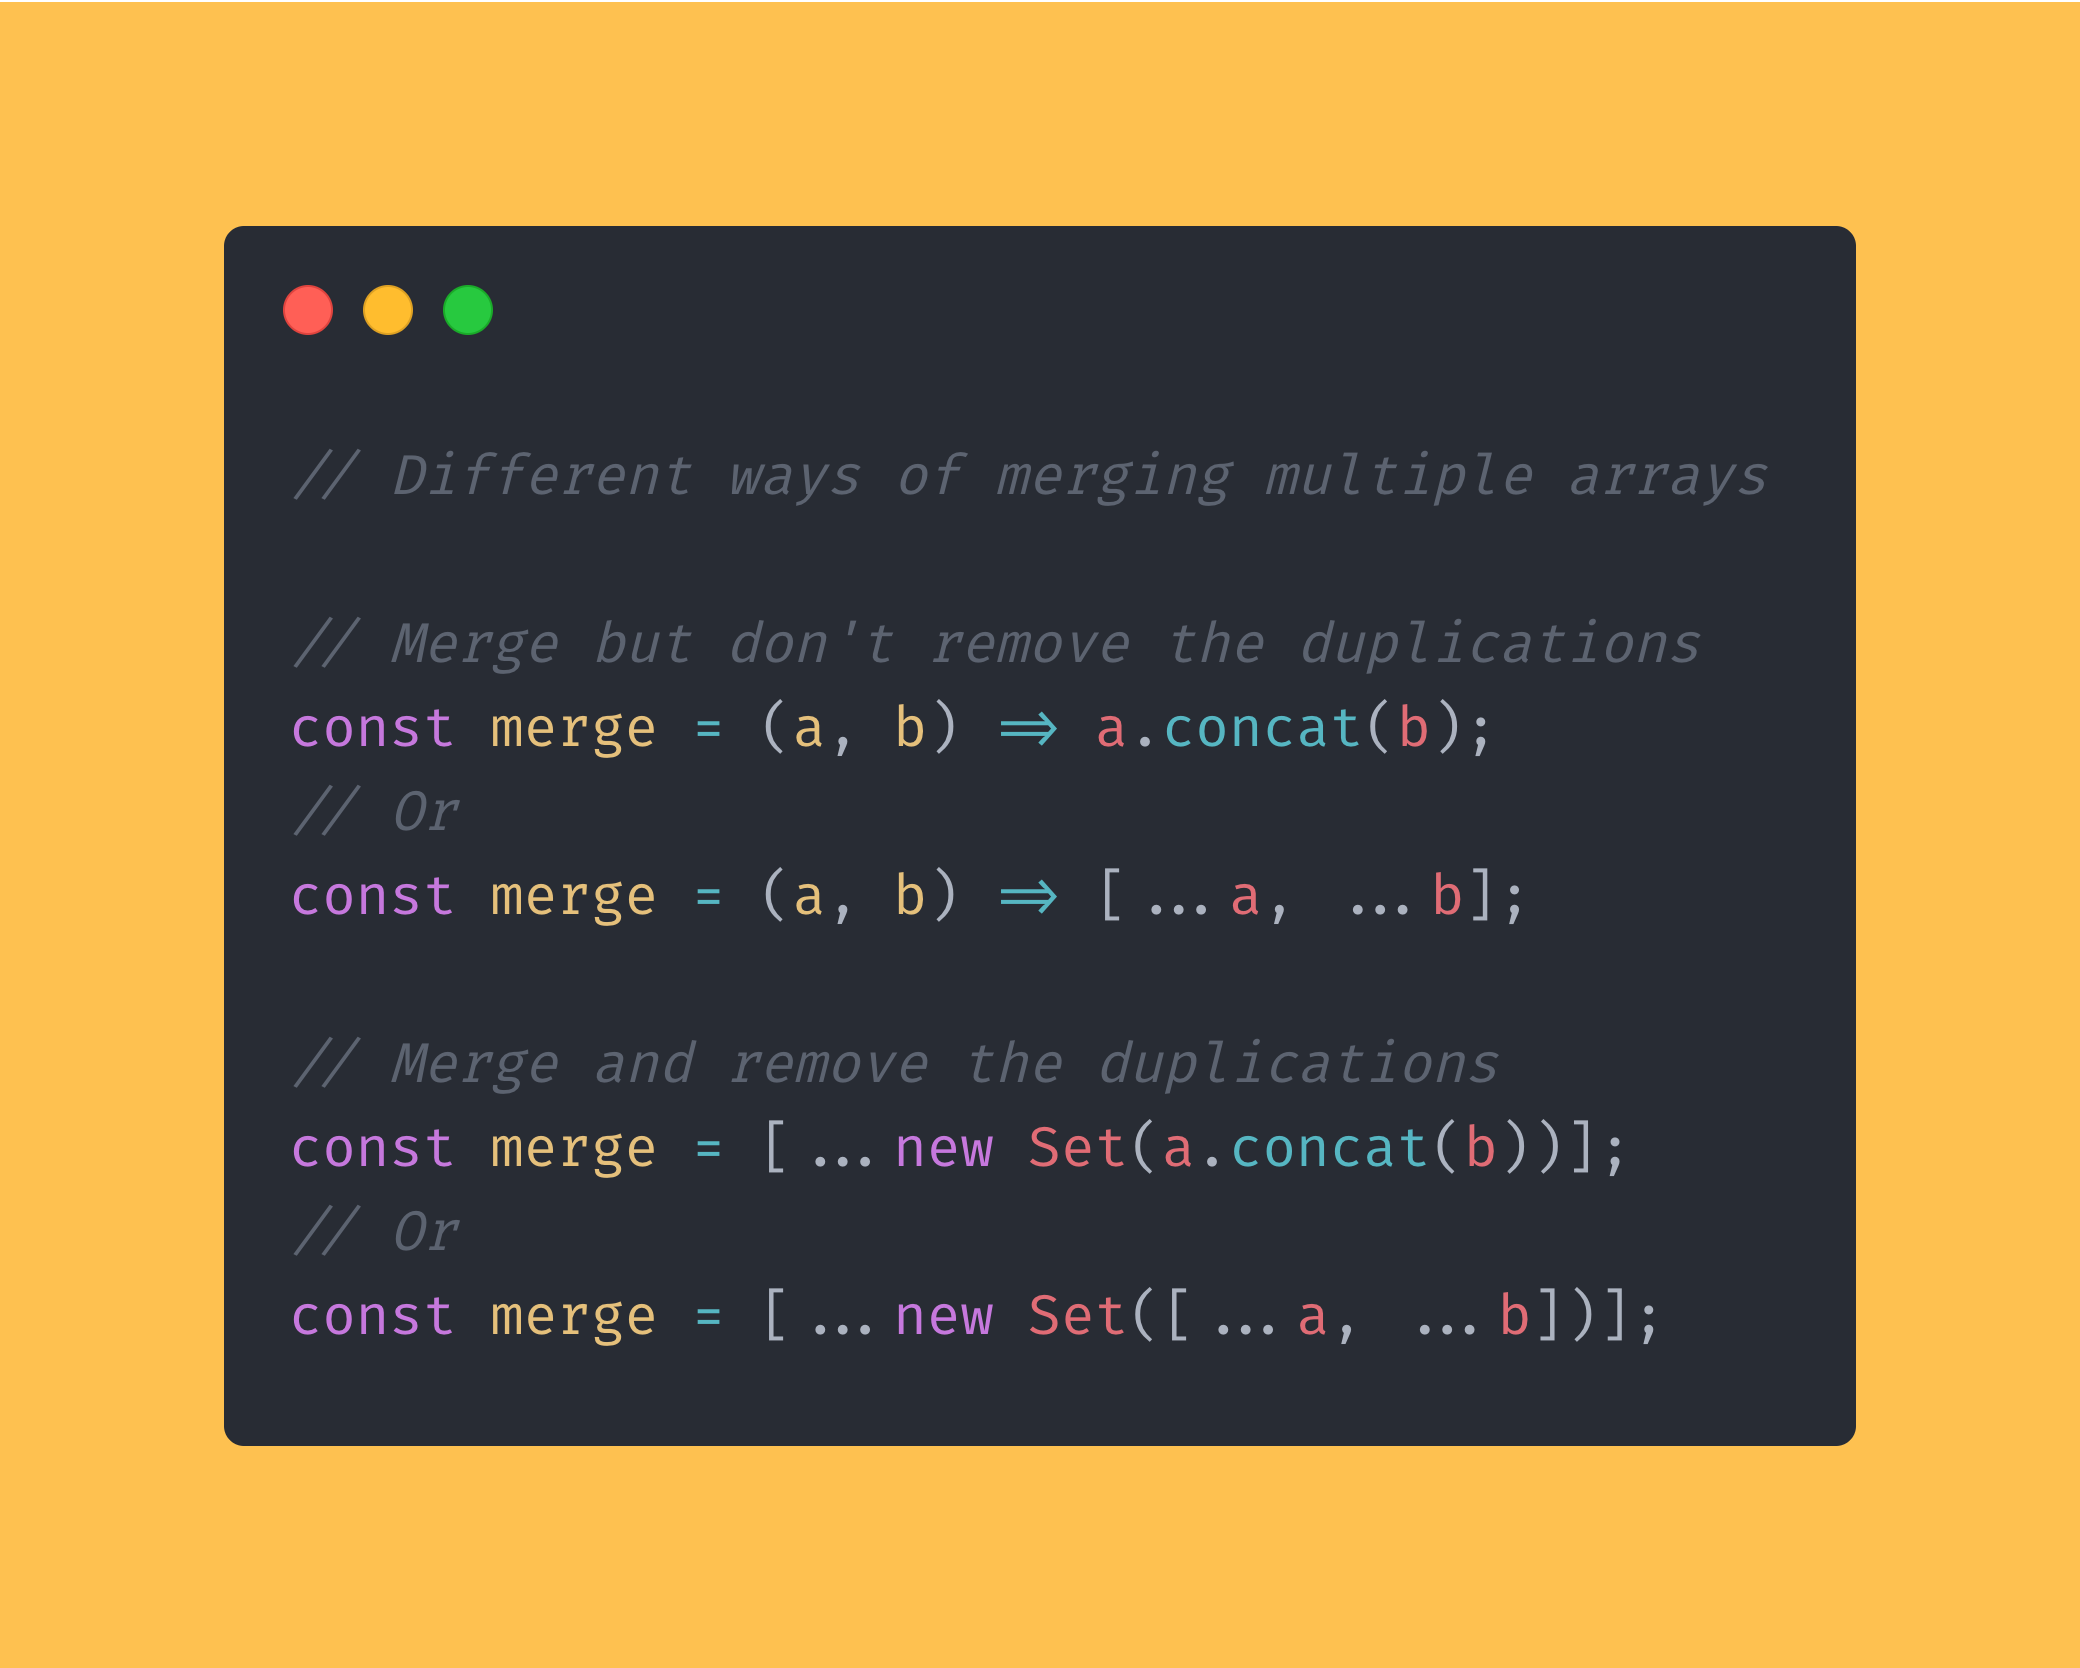 A couple of different ways of merge multiple arrays using JavaScript